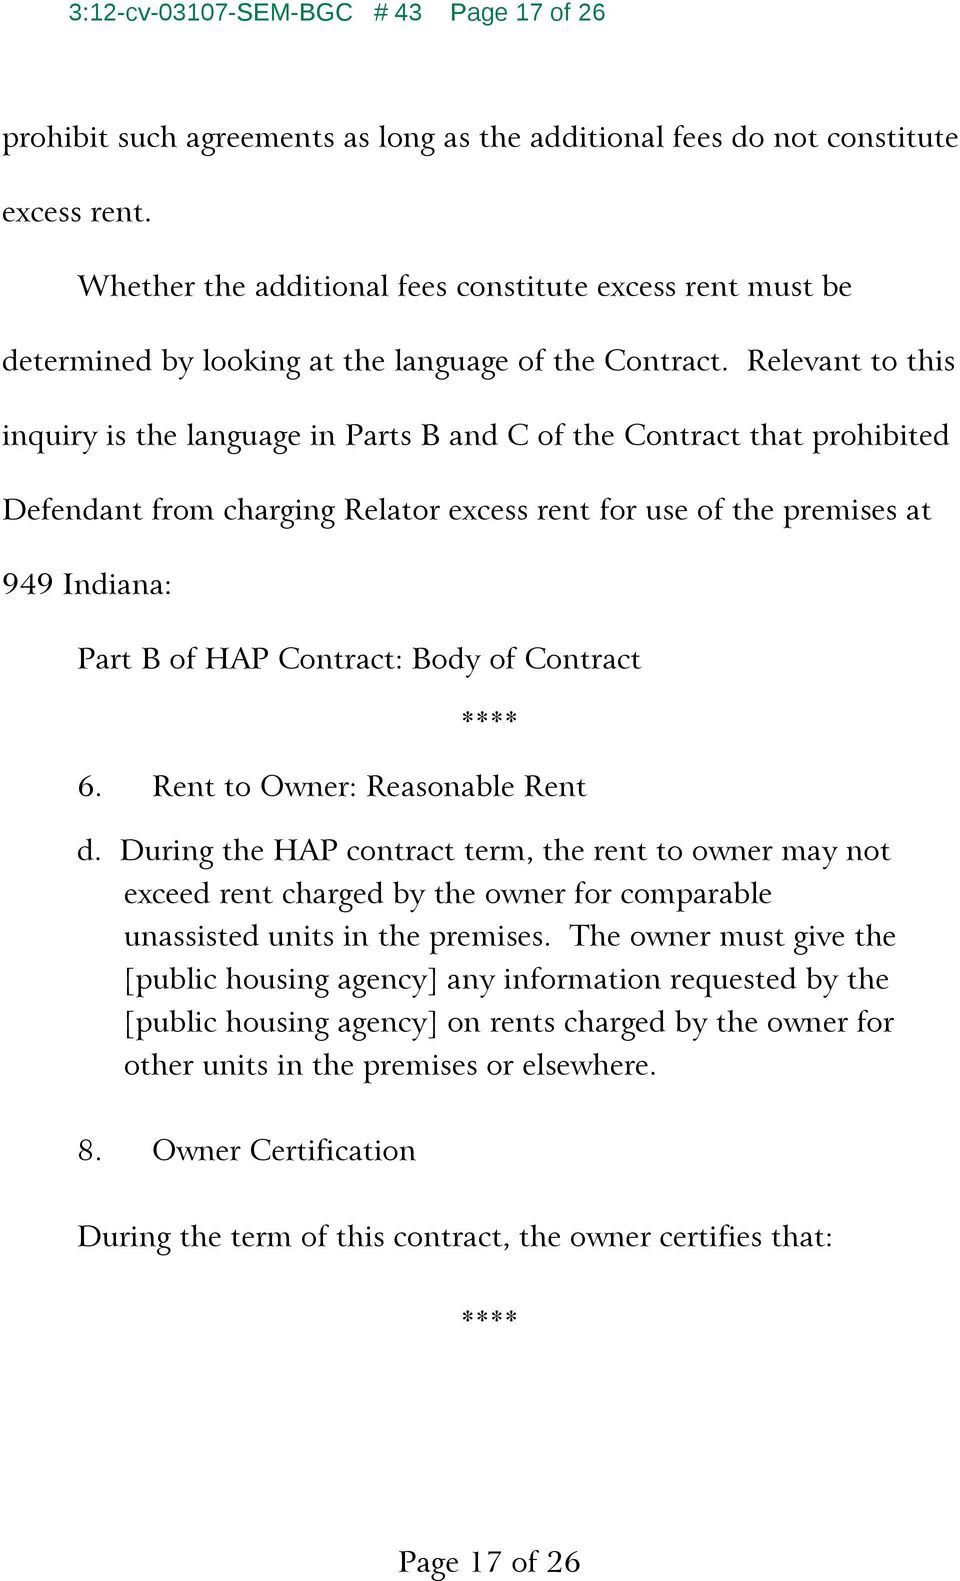 Relevant to this inquiry is the language in Parts B and C of the Contract that prohibited Defendant from charging Relator excess rent for use of the premises at 949 Indiana: Part B of HAP Contract: